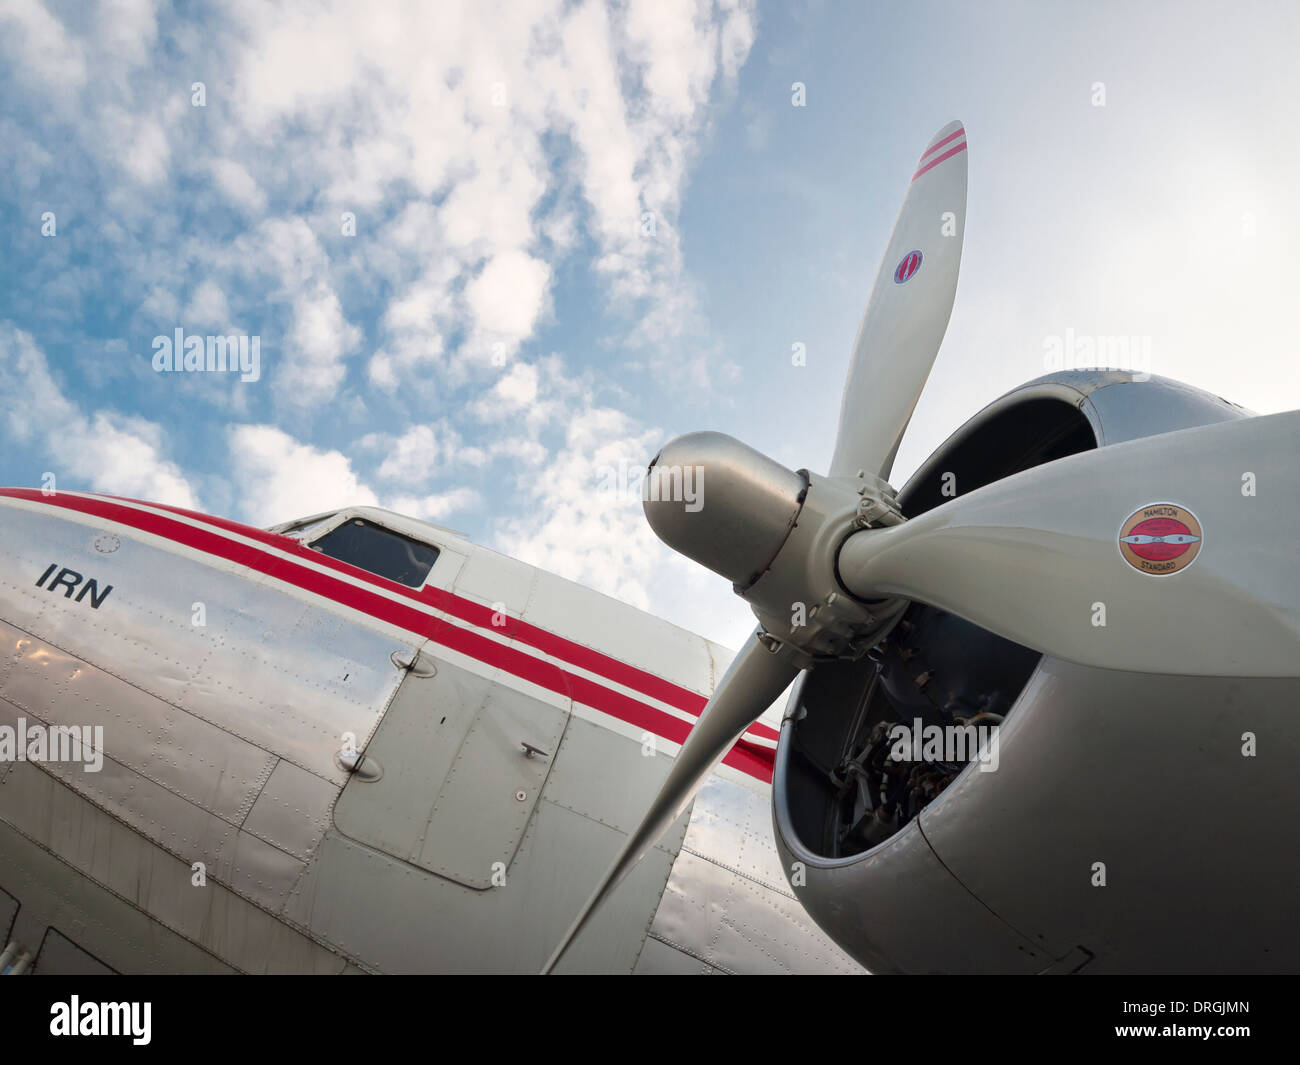 Douglas DC-3 vintage aircraft exhibited at the Swiss national museum of transportation ('Verkehrshaus') - Stock Image